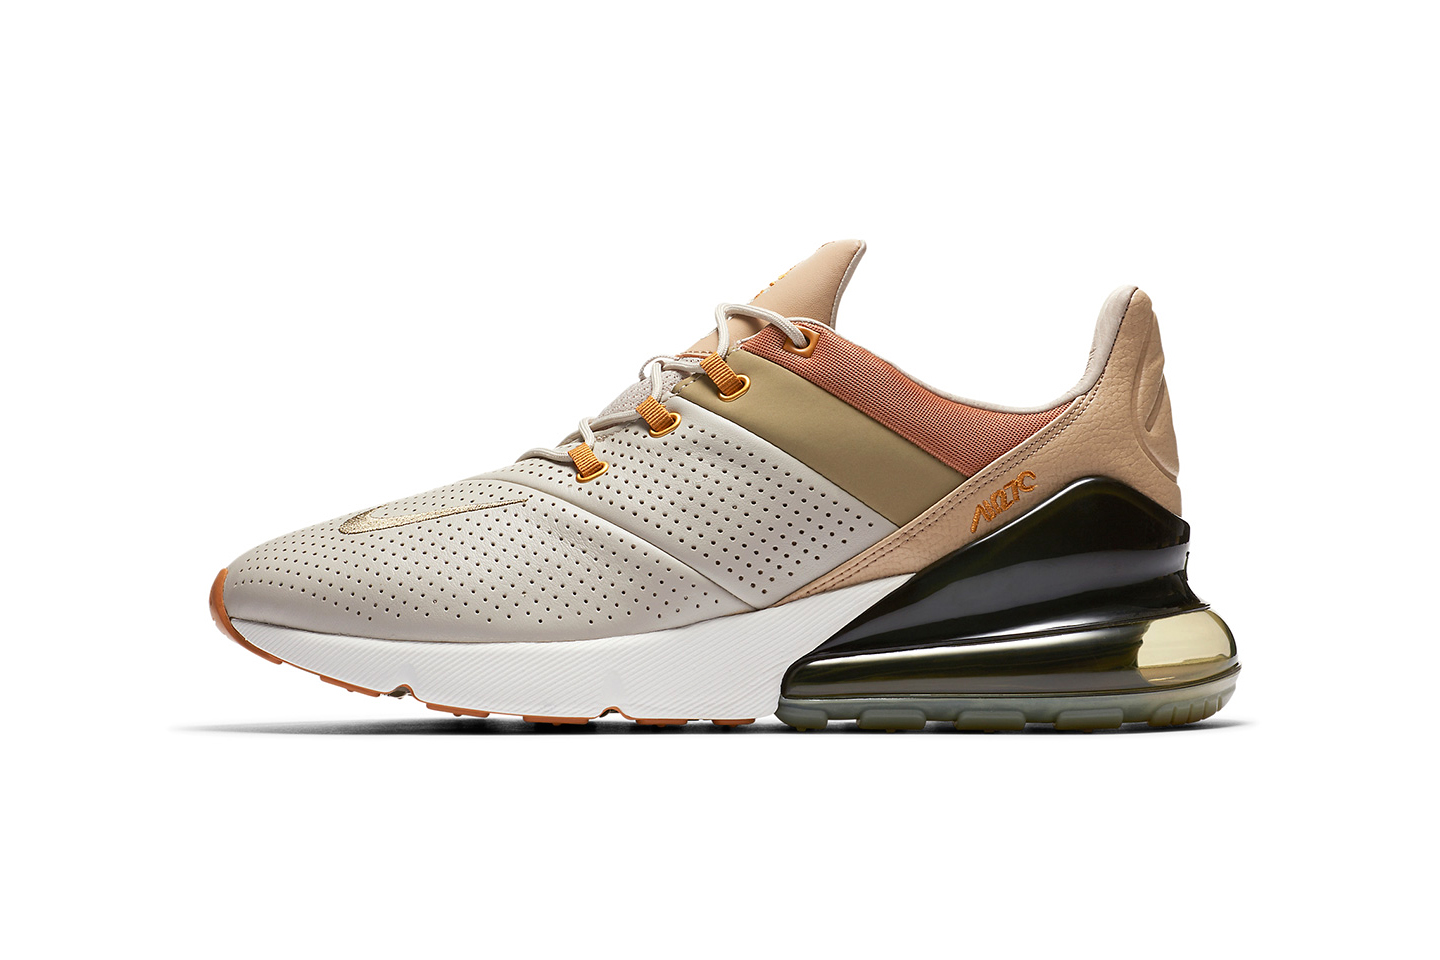 Nike Air Max 270 Premium String Black july 2018 release date info drop sneakers shoes footwear